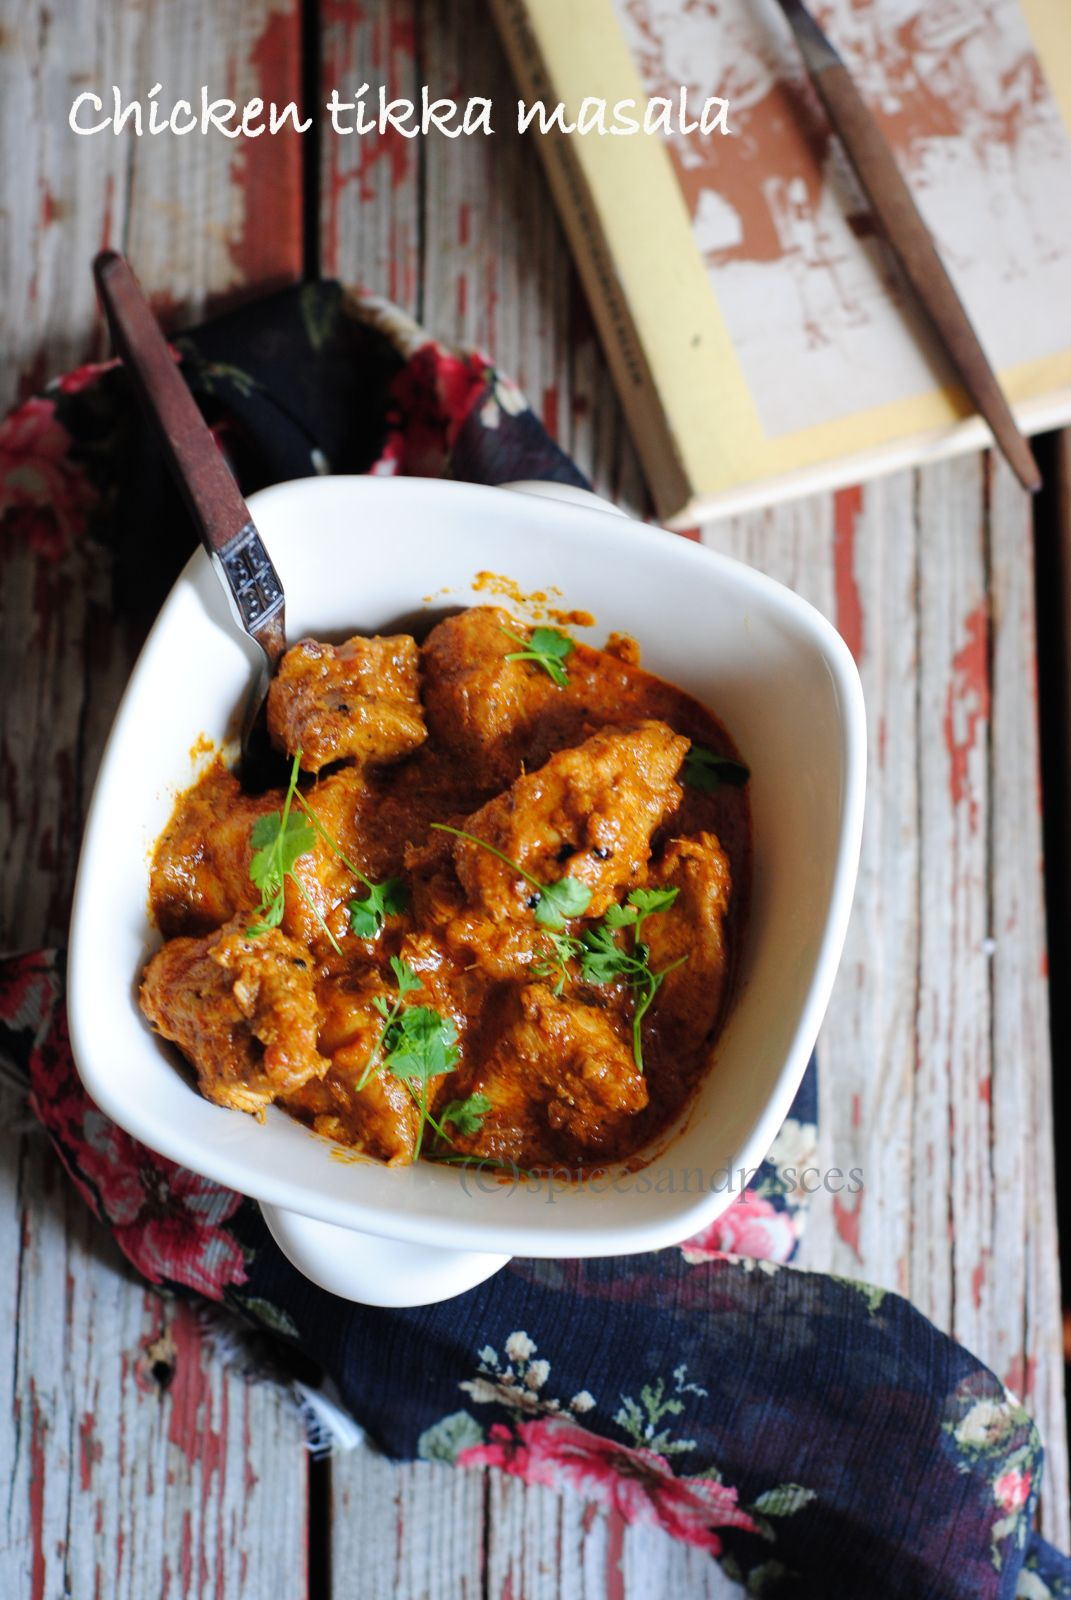 Chicken Tikka Masala | Spices and Pisces